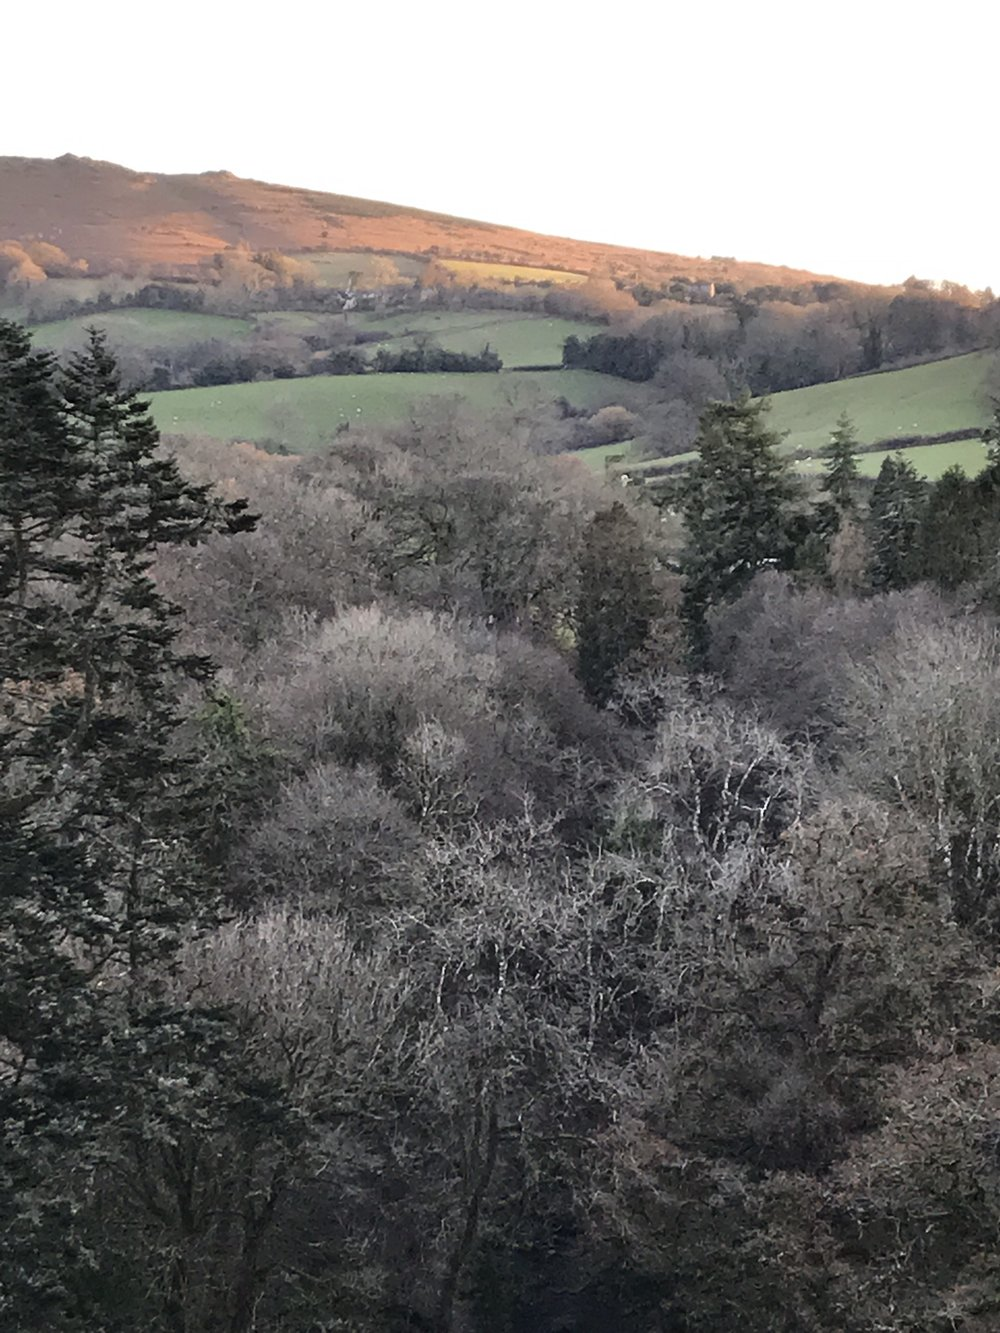 Meldon Hill early December 2017